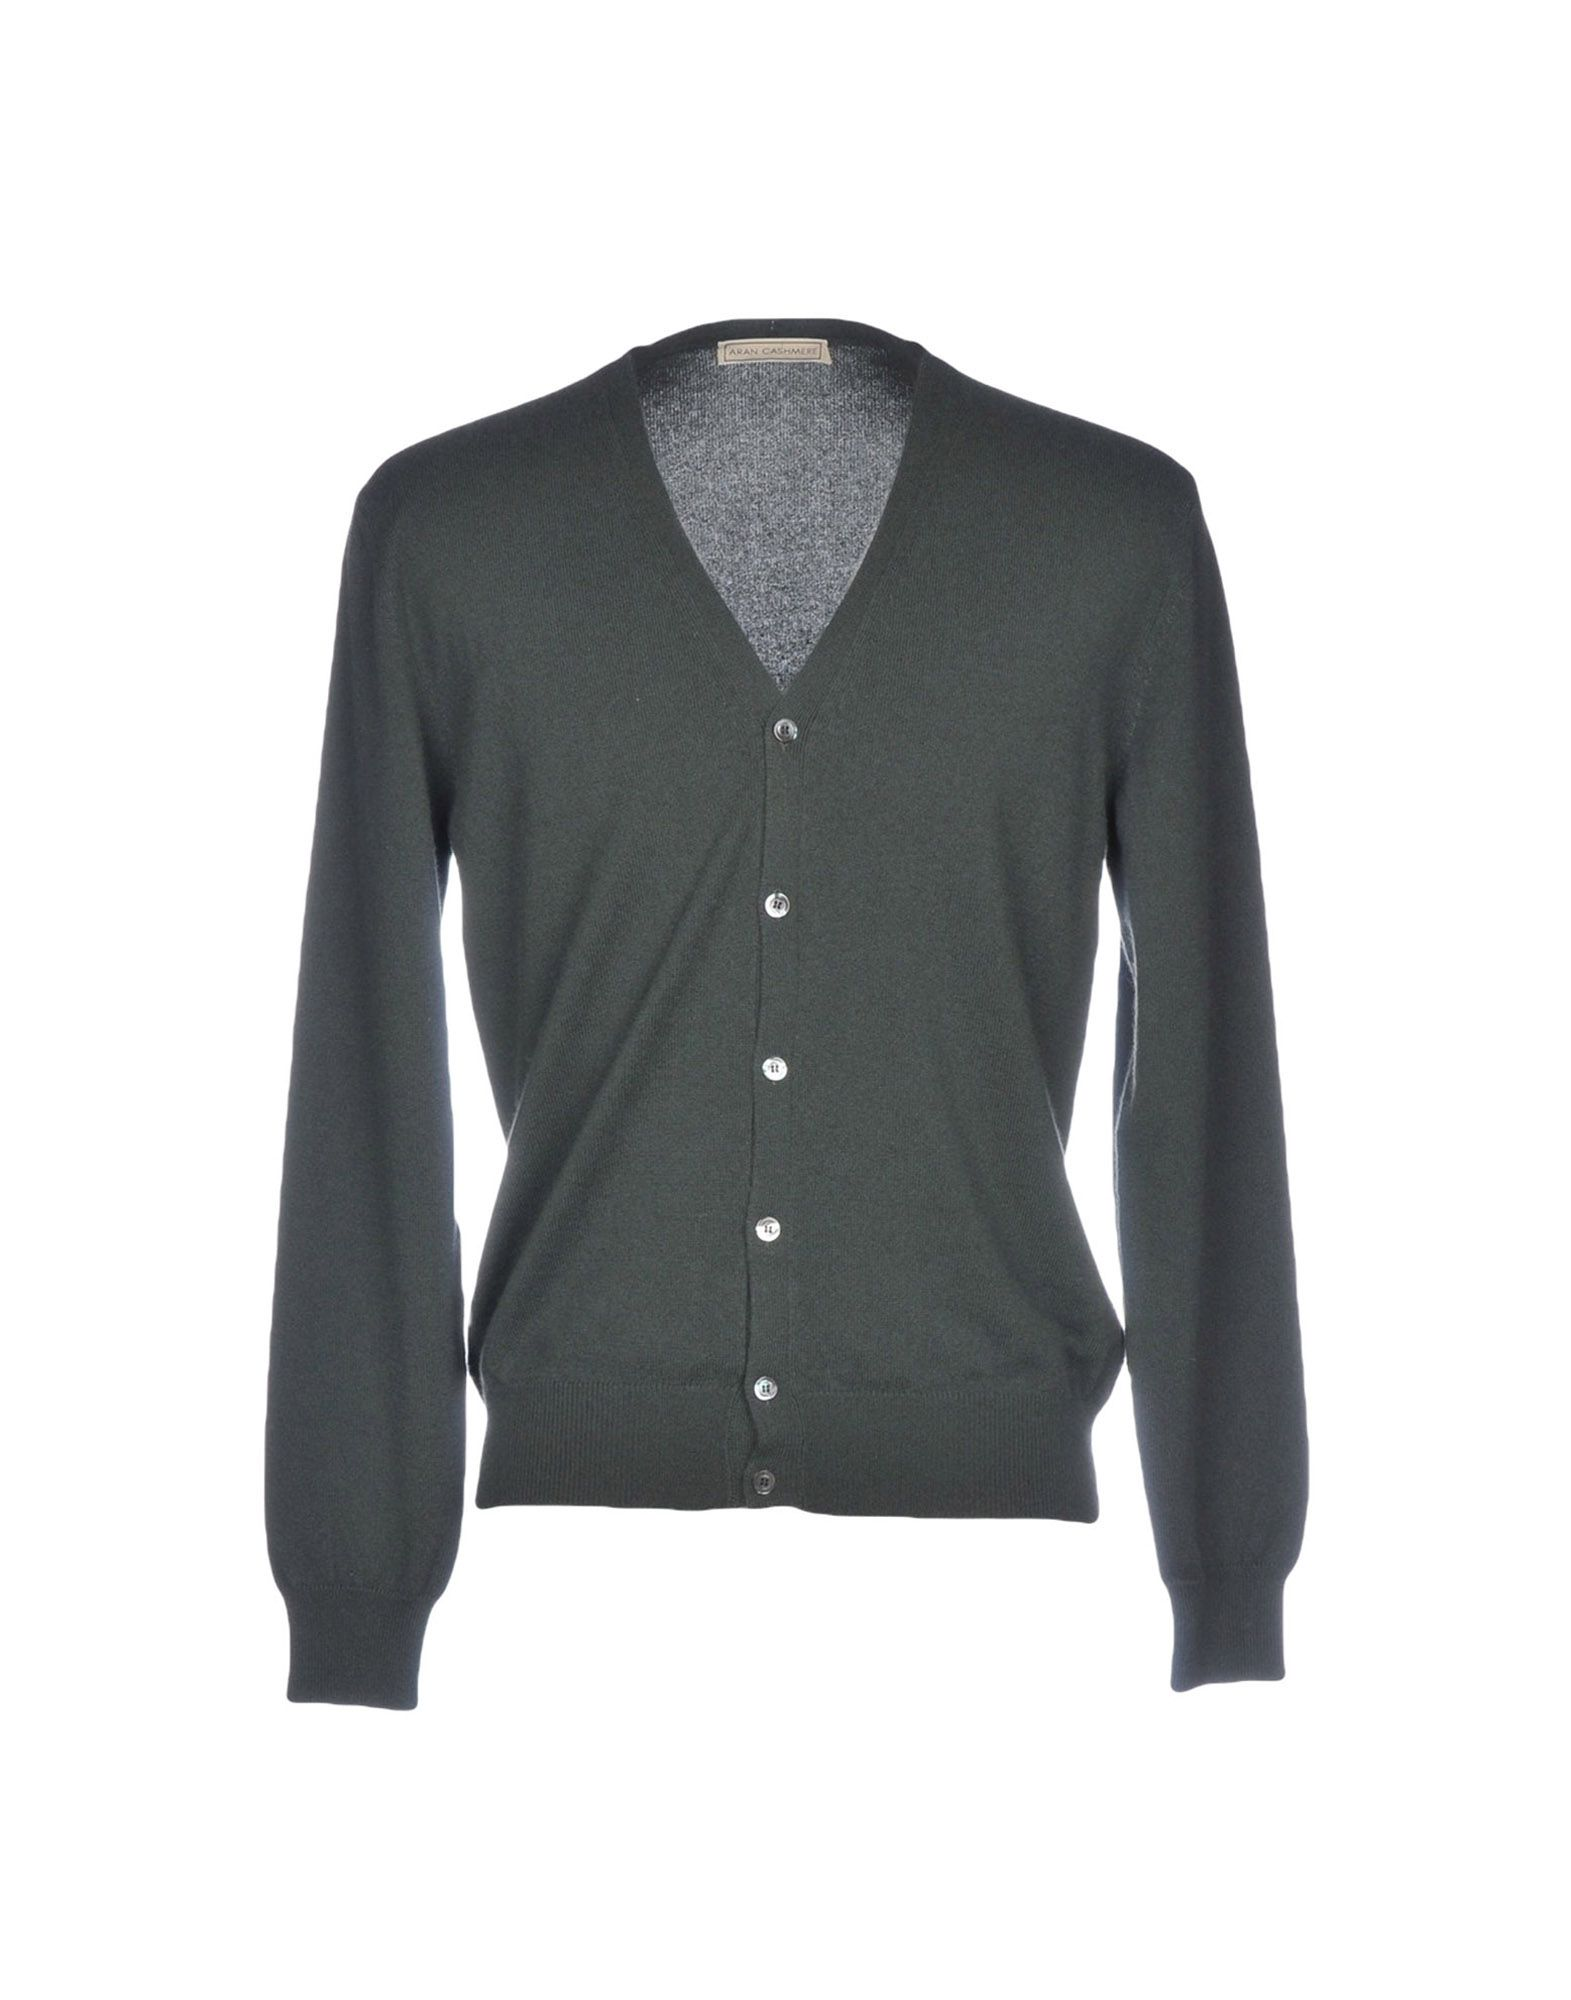 ARAN CASHMERE Cardigan in Military Green